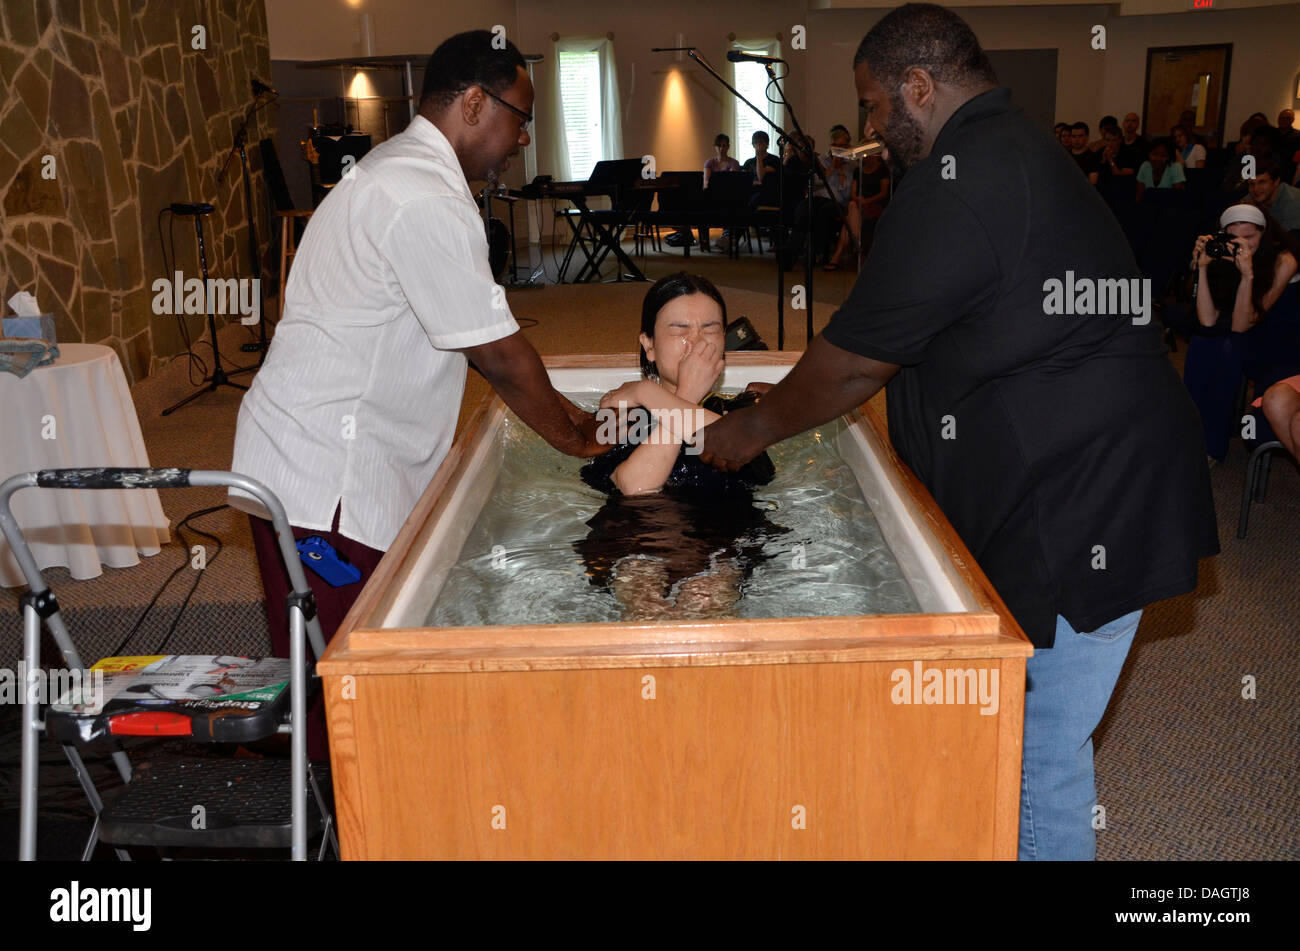 Two black pastors baptize an Asian girl during a church service in Riverdale Park, Maryland - Stock Image